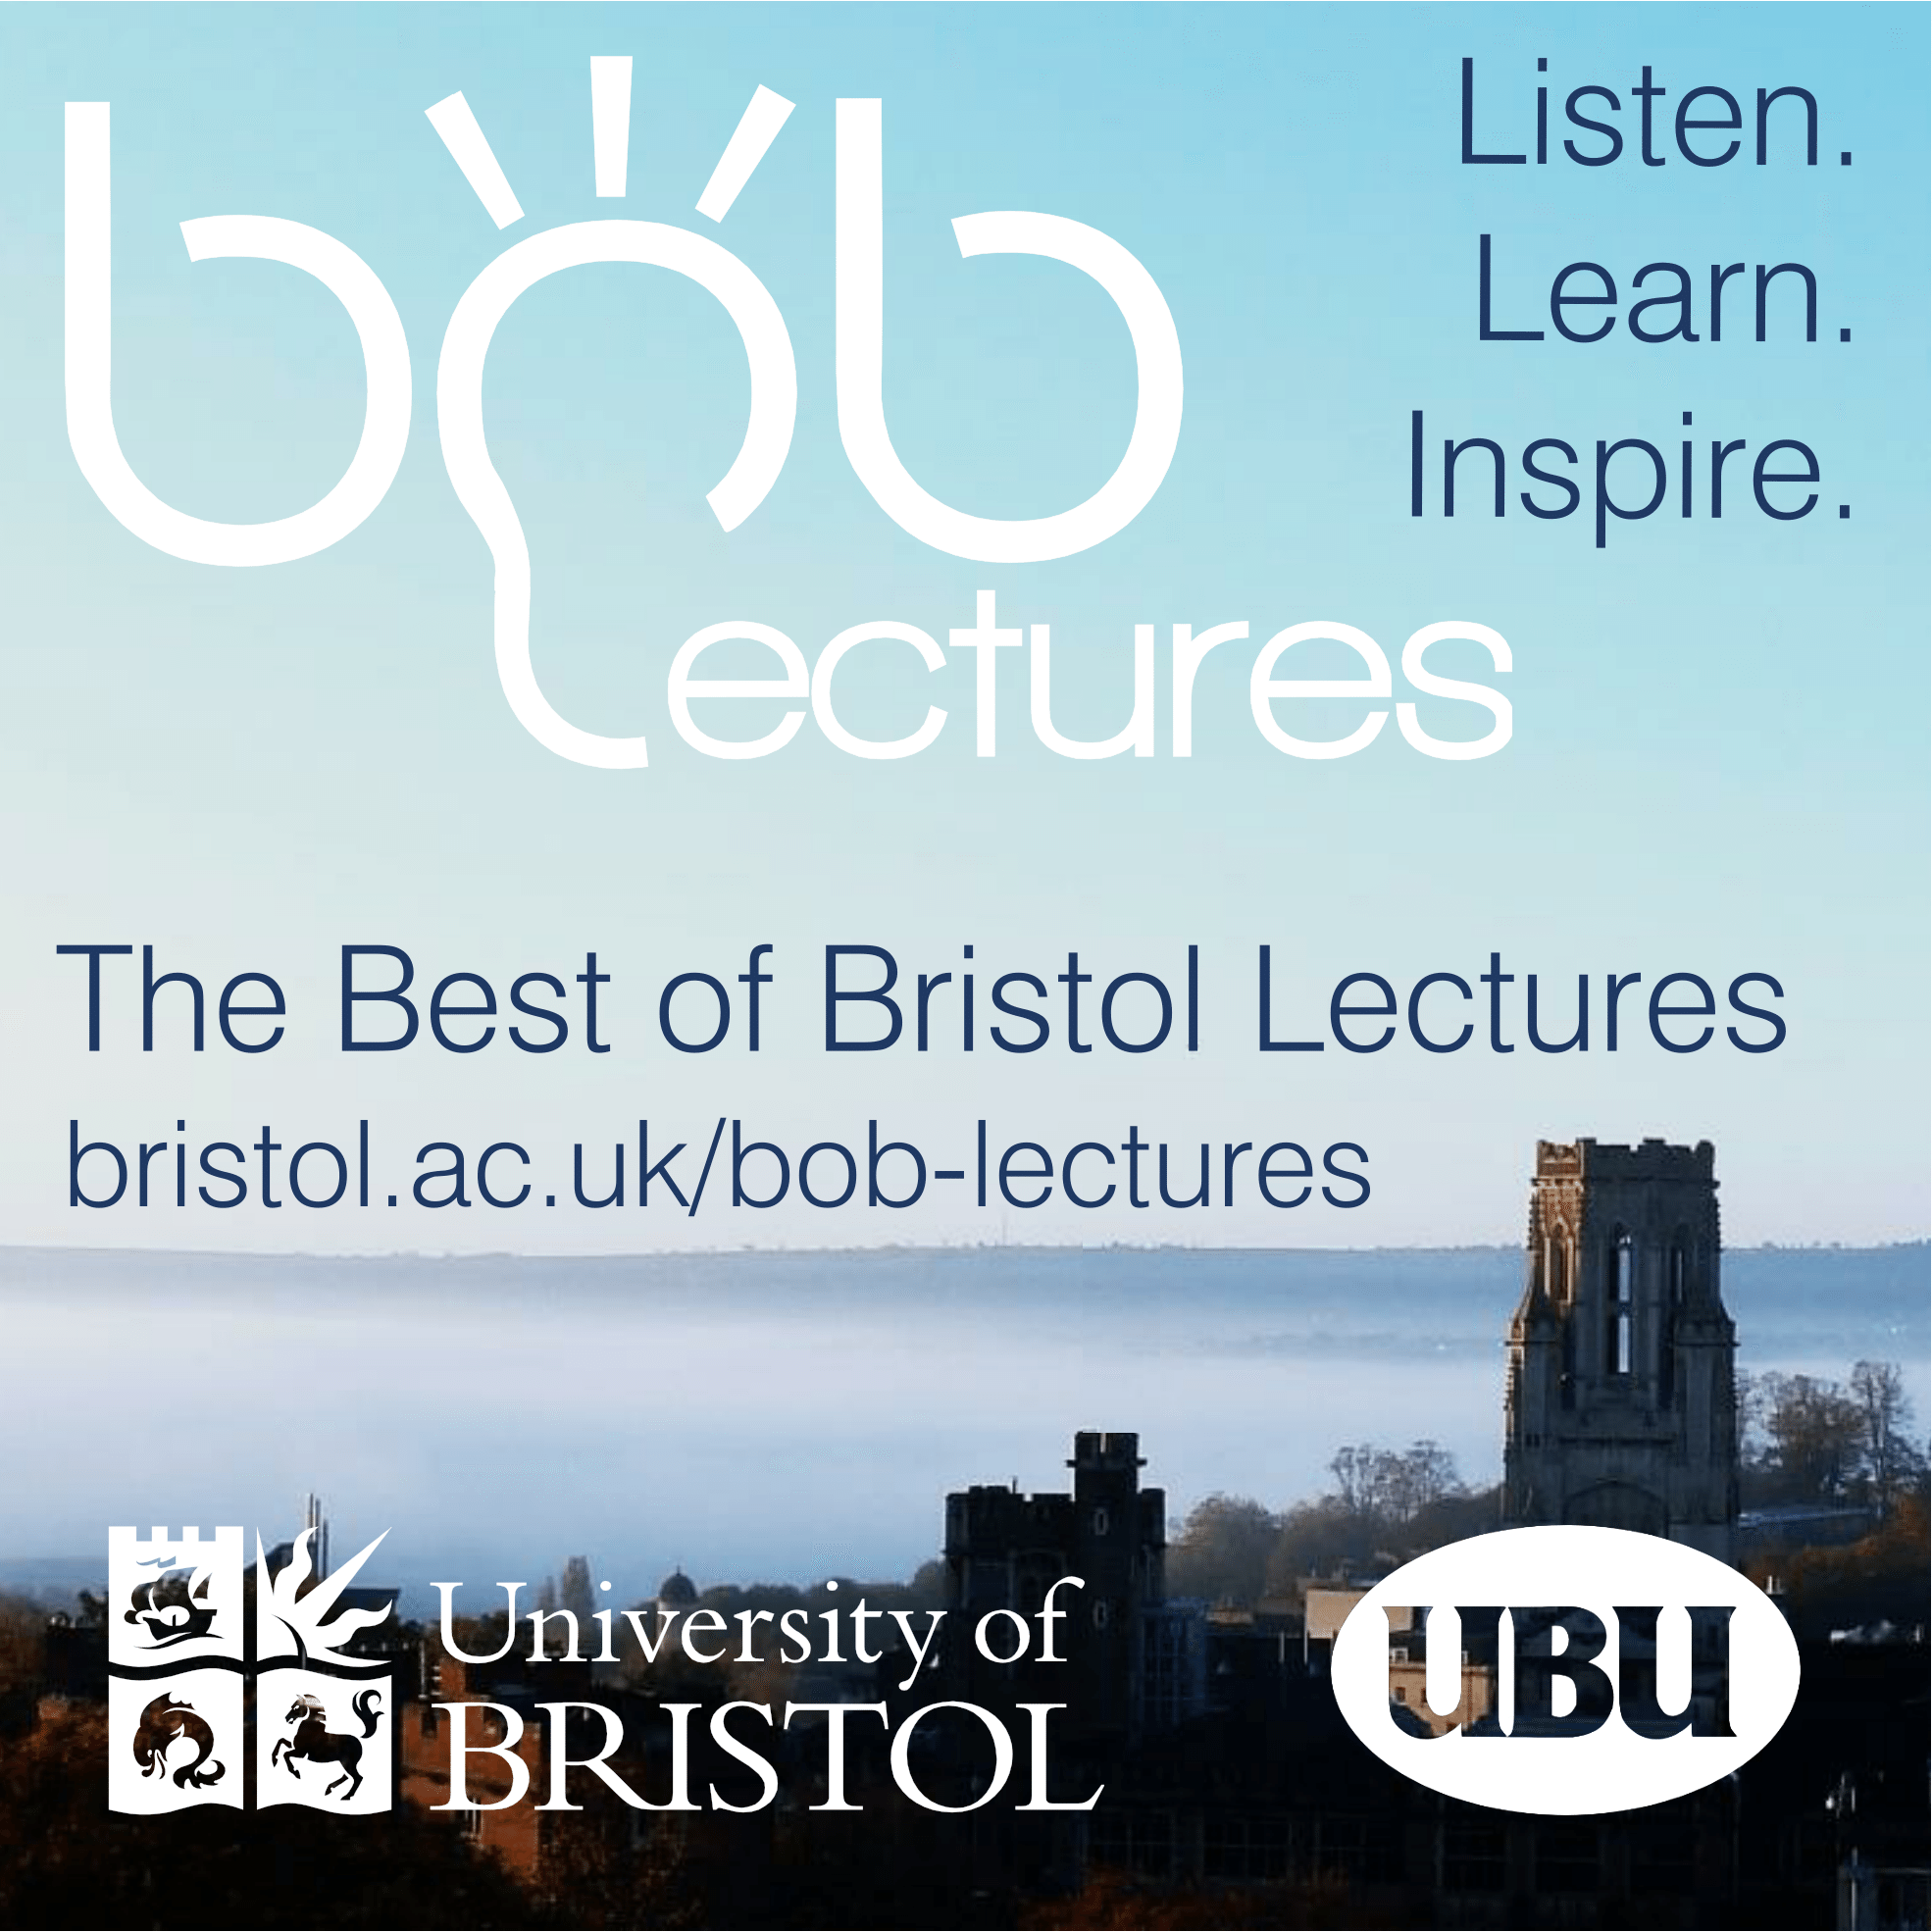 BoB Lectures - the Best of Bristol Lectures